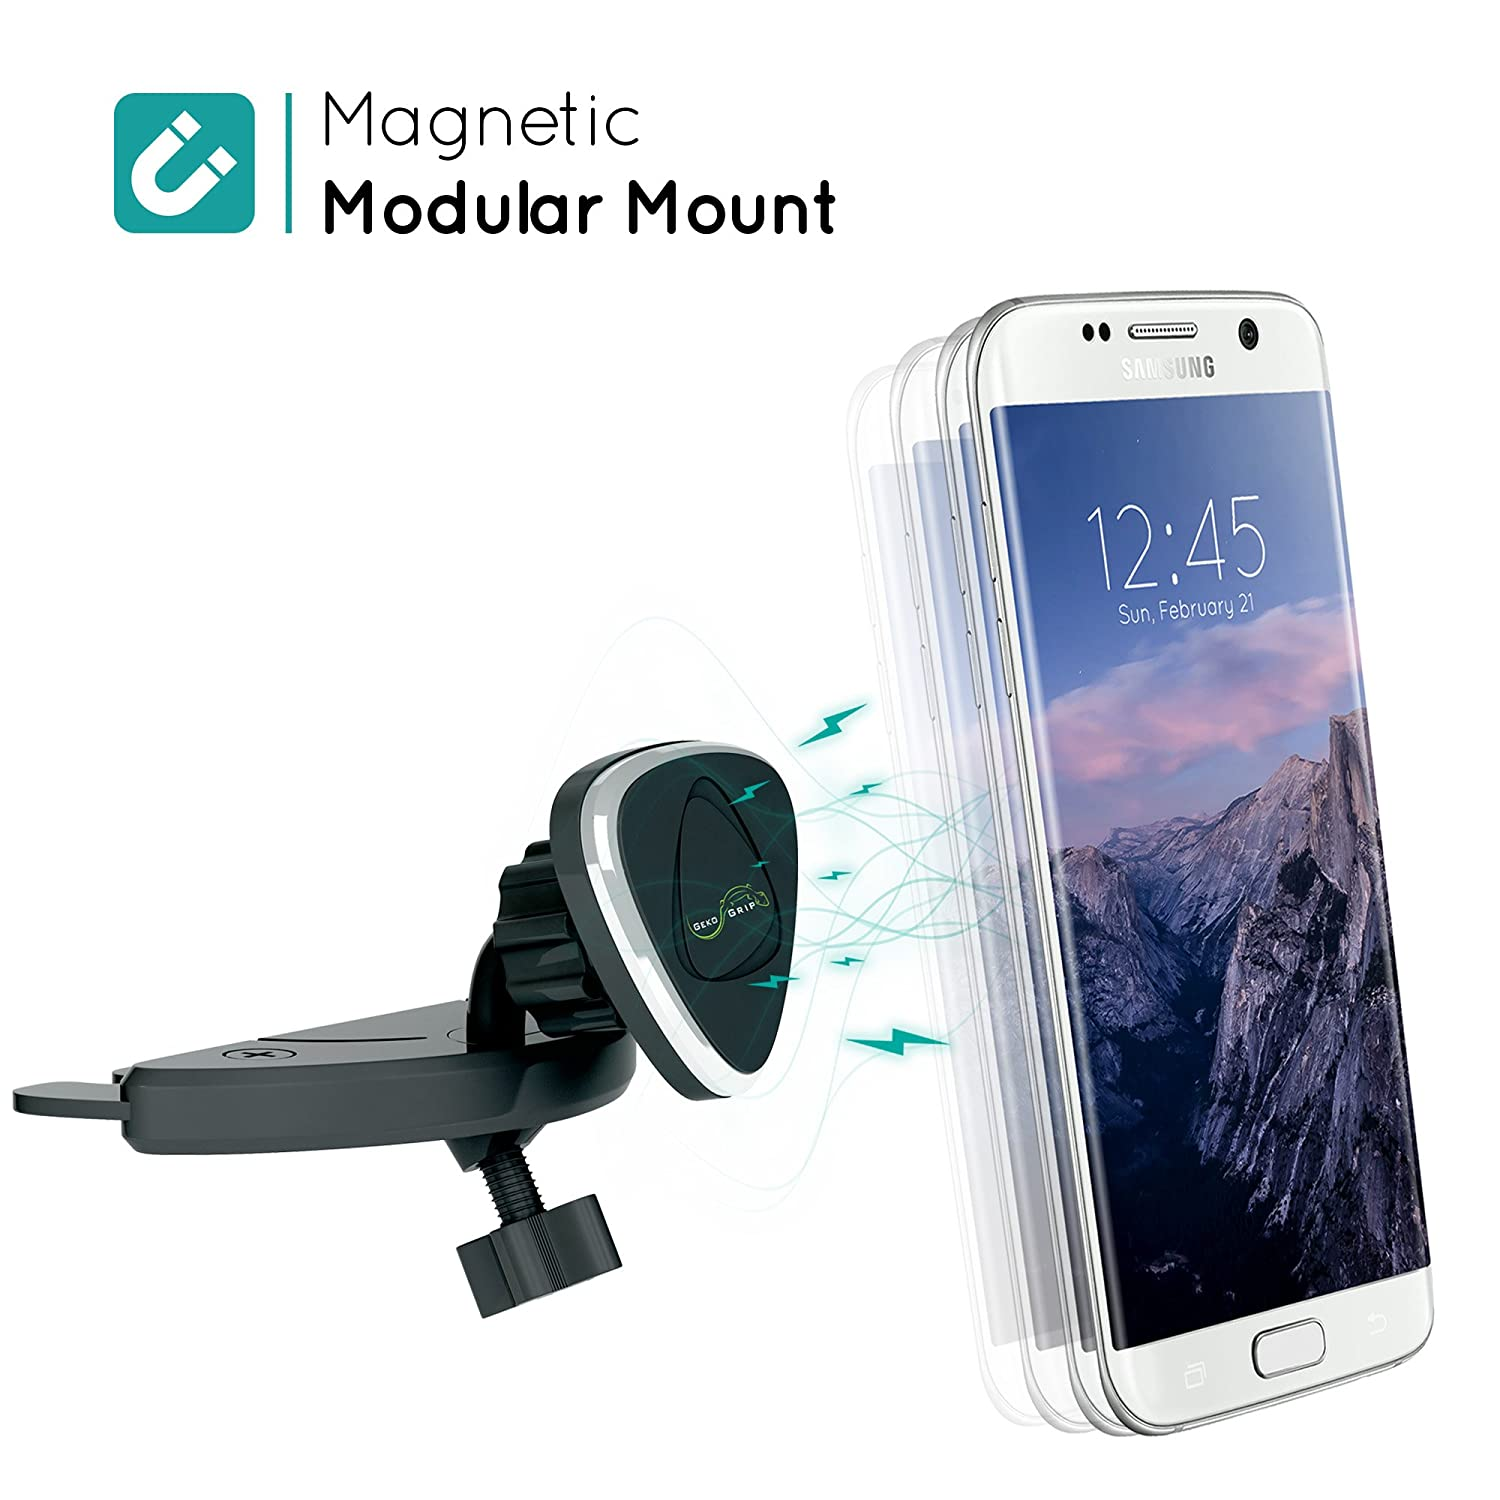 GekoGrip Modular Magnetic Car Mount | Universal Cradle-less CD Slot Holder - Compatible with iPhone and Android Smartphones and Mini Tablets Mobei vCD-MM1